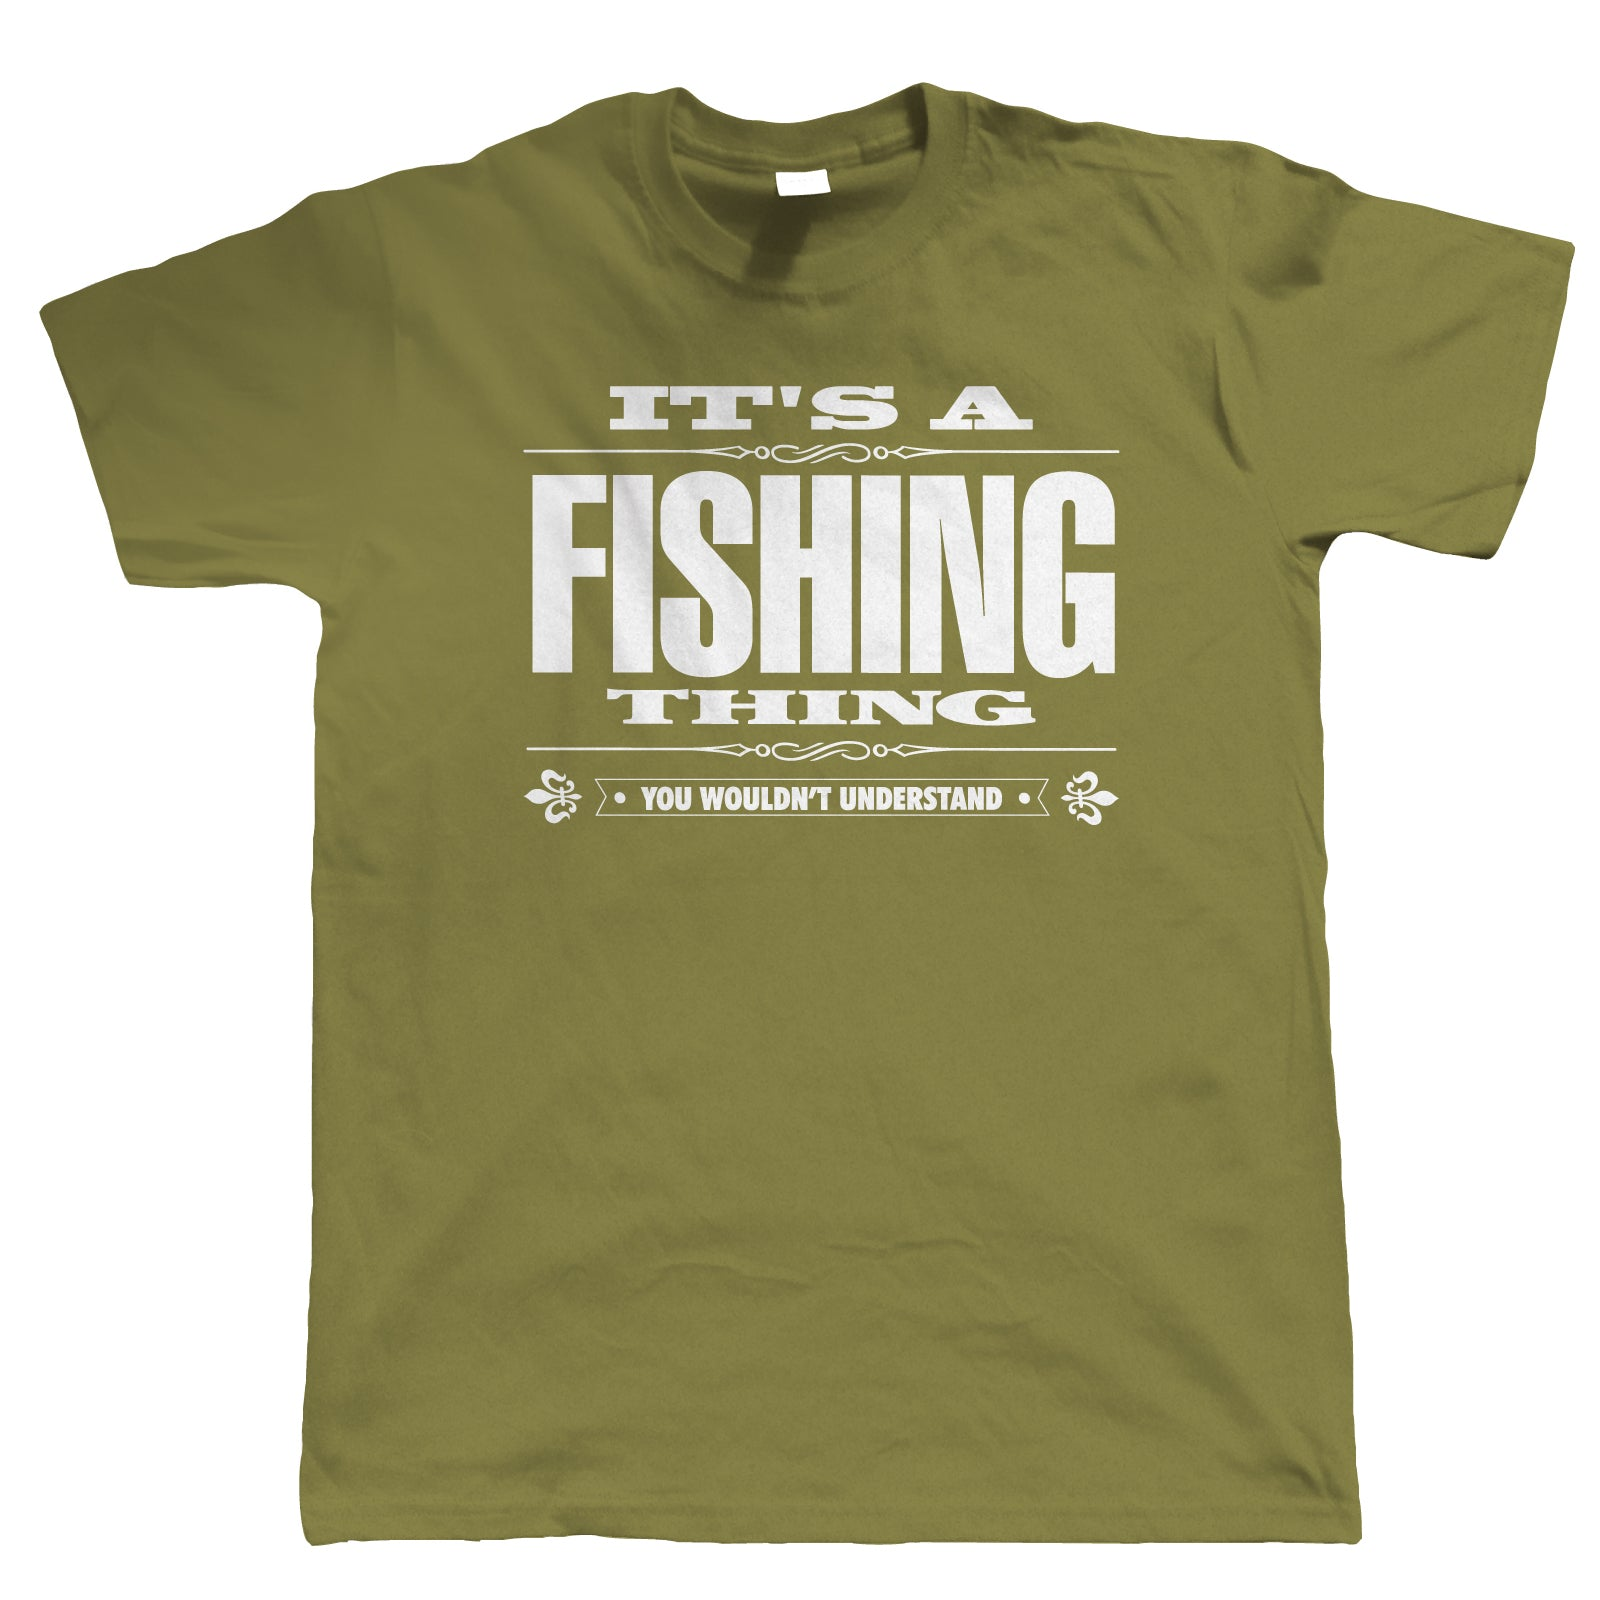 It's A Fishing Thing, Mens Funny T Shirt | Coarse Carp Sea Match Fly Specimen Tackle Fishermen Clothing Angling Angler | Cool Birthday Christmas Gift Present Him Dad Husband Son